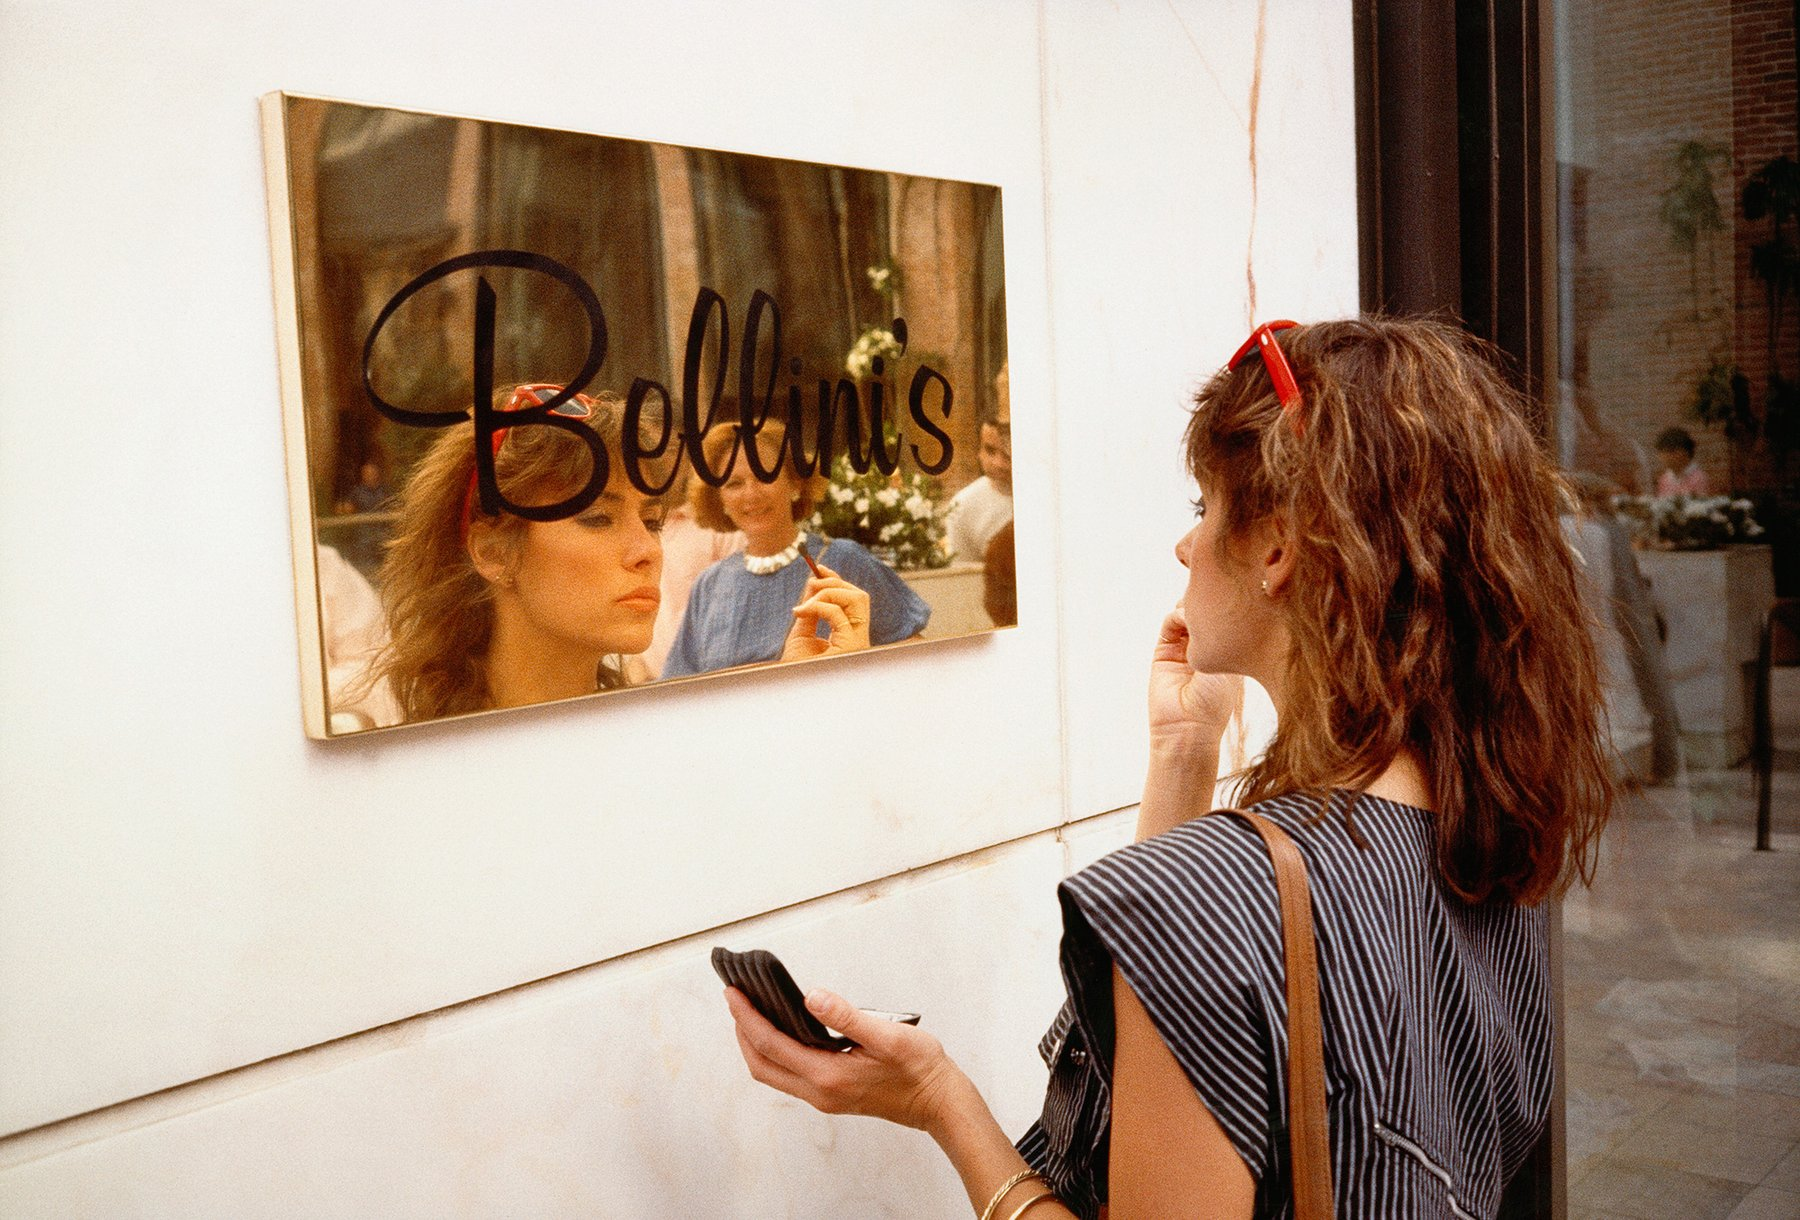 A woman looks into a relective store sign to fix her makeup